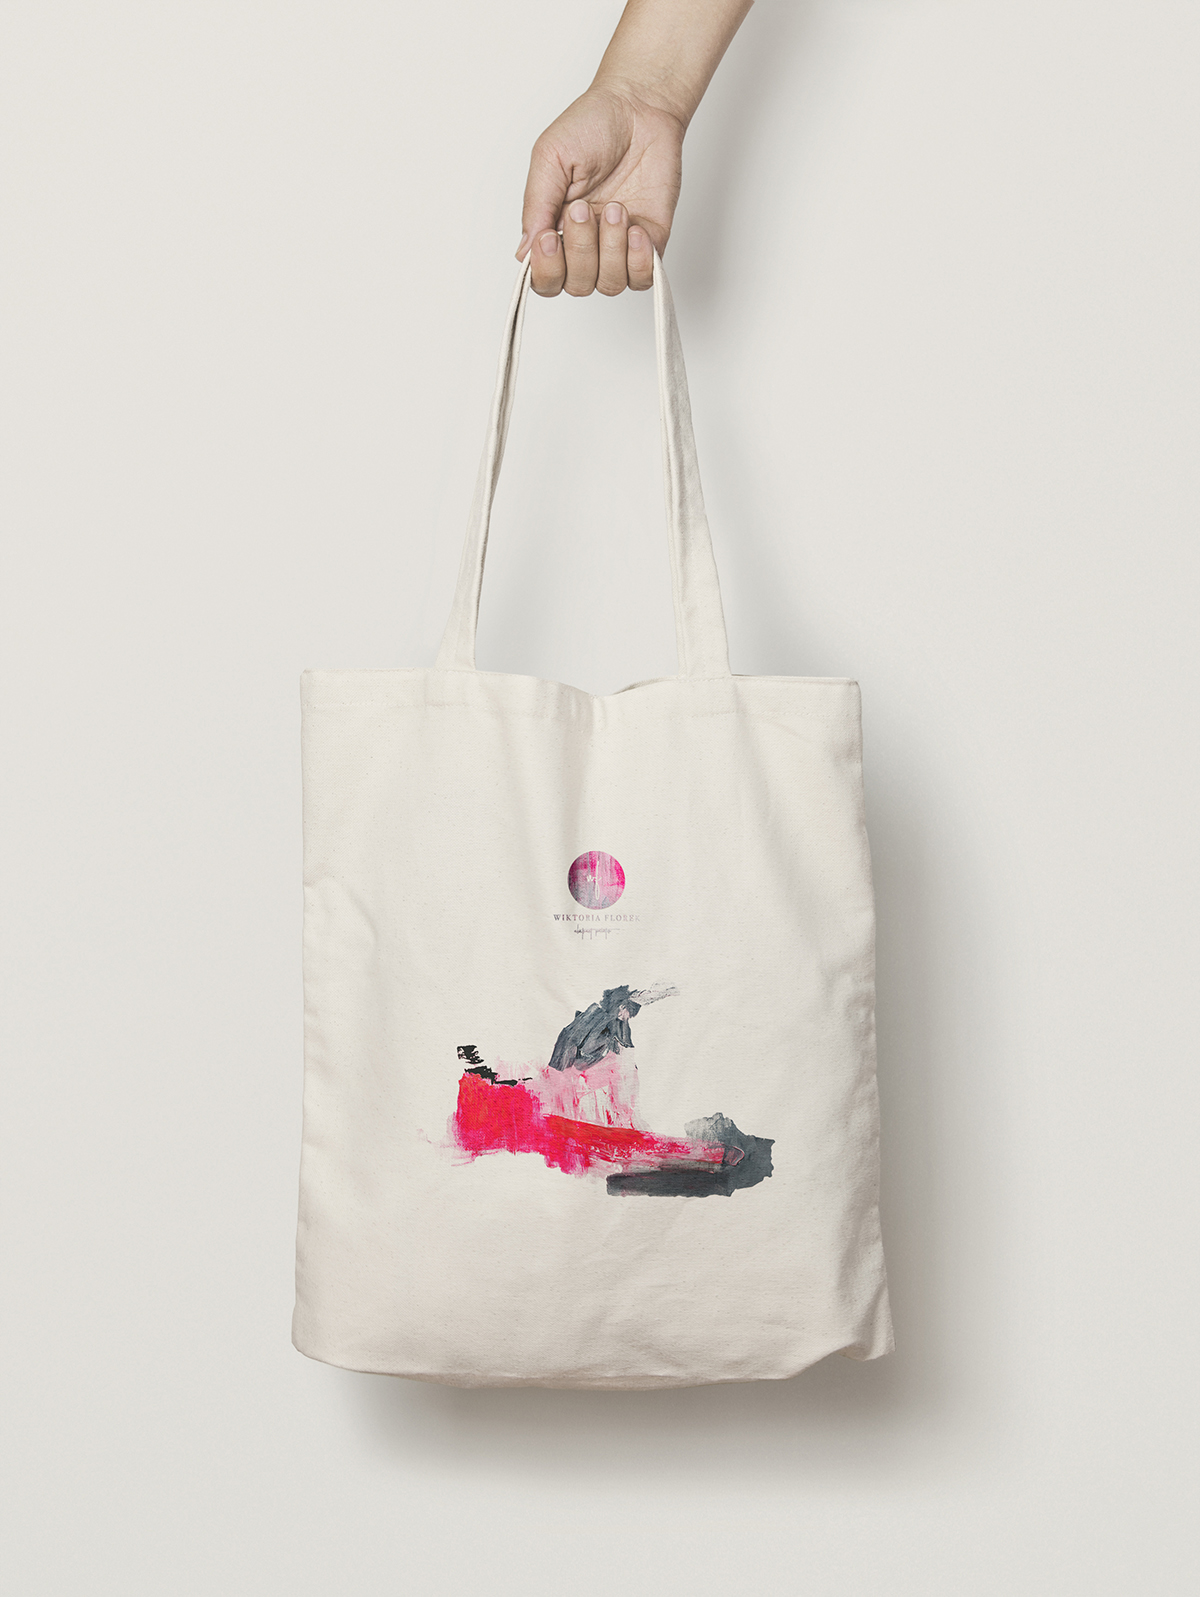 abstract-cotton-bag-love-story-WF-